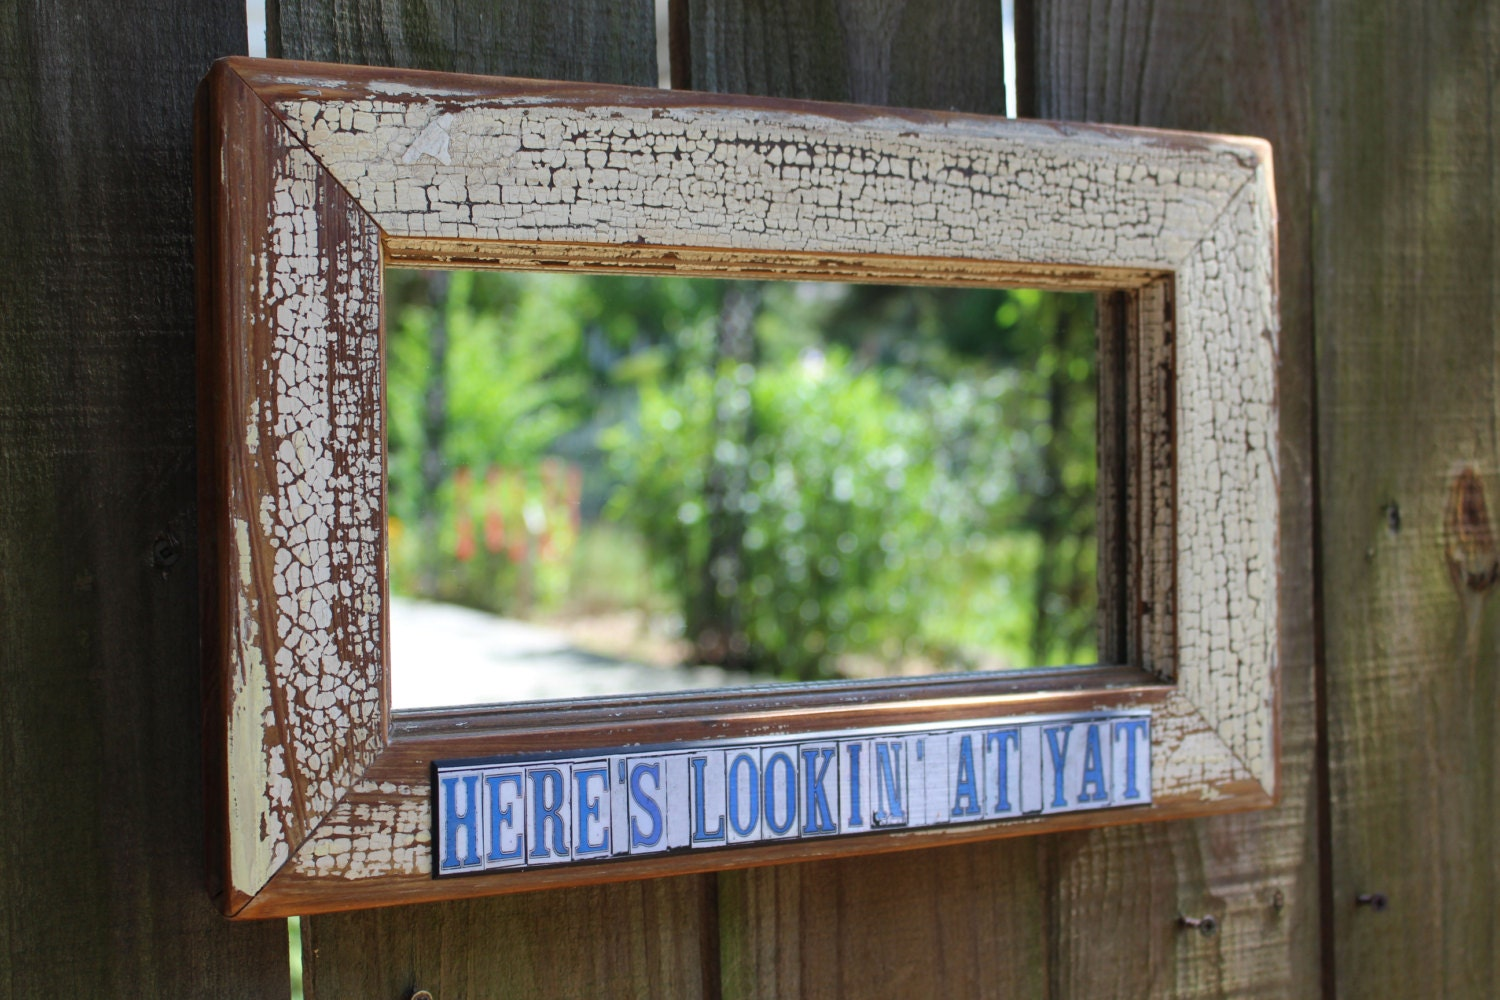 Home decor accent mirror New Orleans street tiles Where